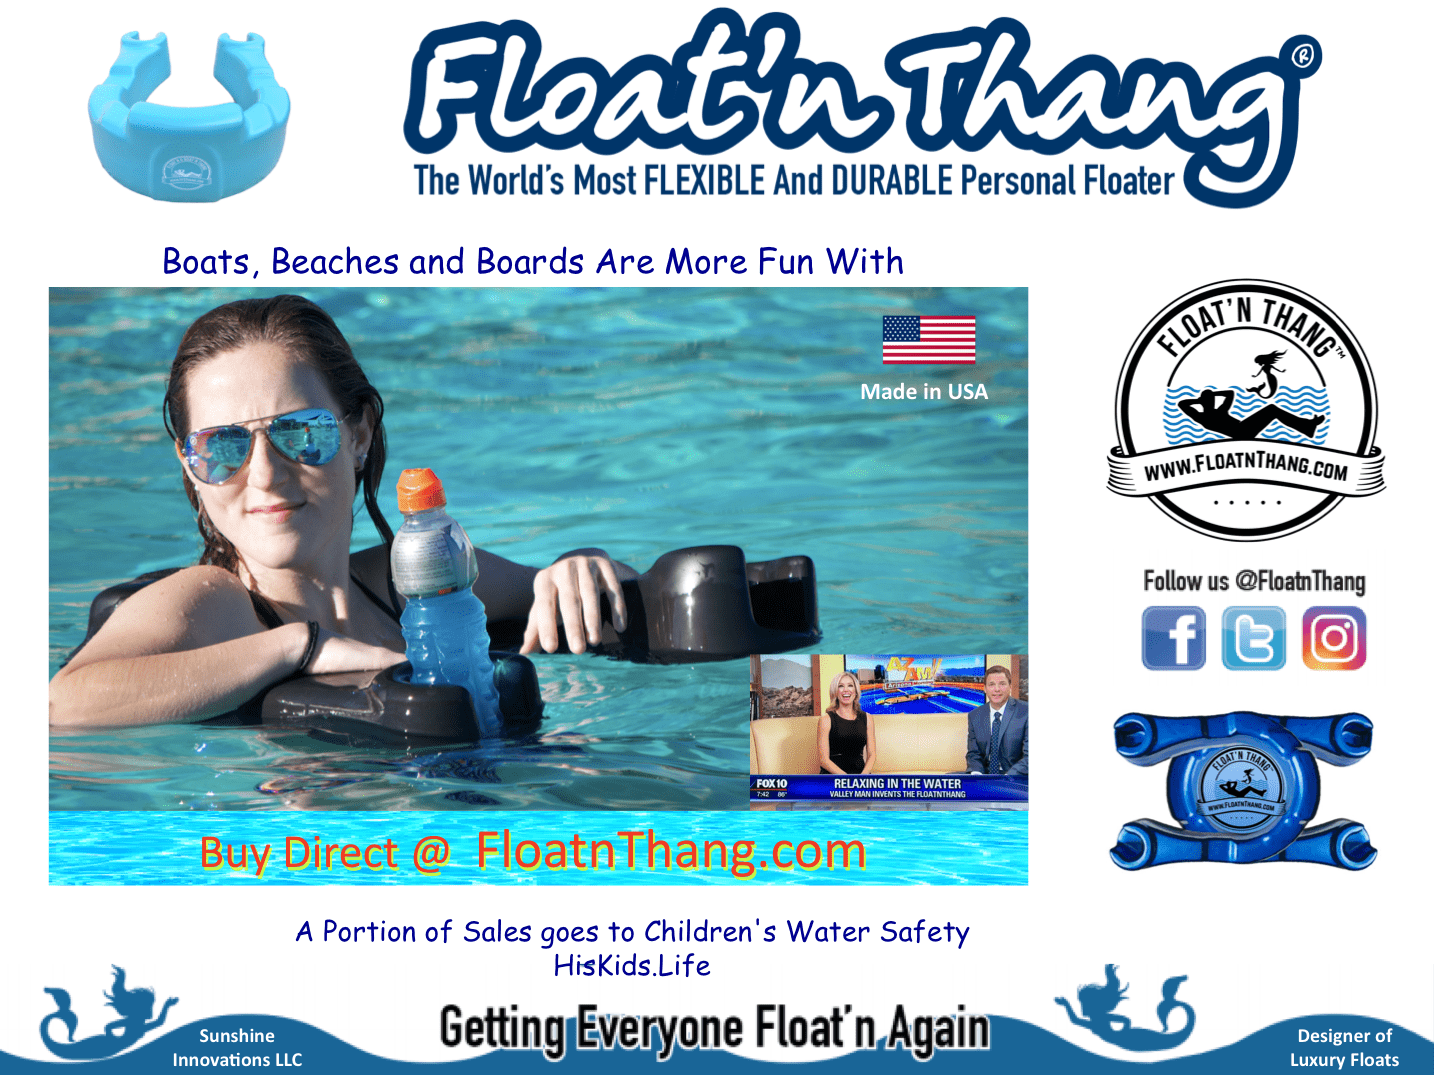 World Most Luxurious In-Water Flotation - Luxury Personal Flotation Device